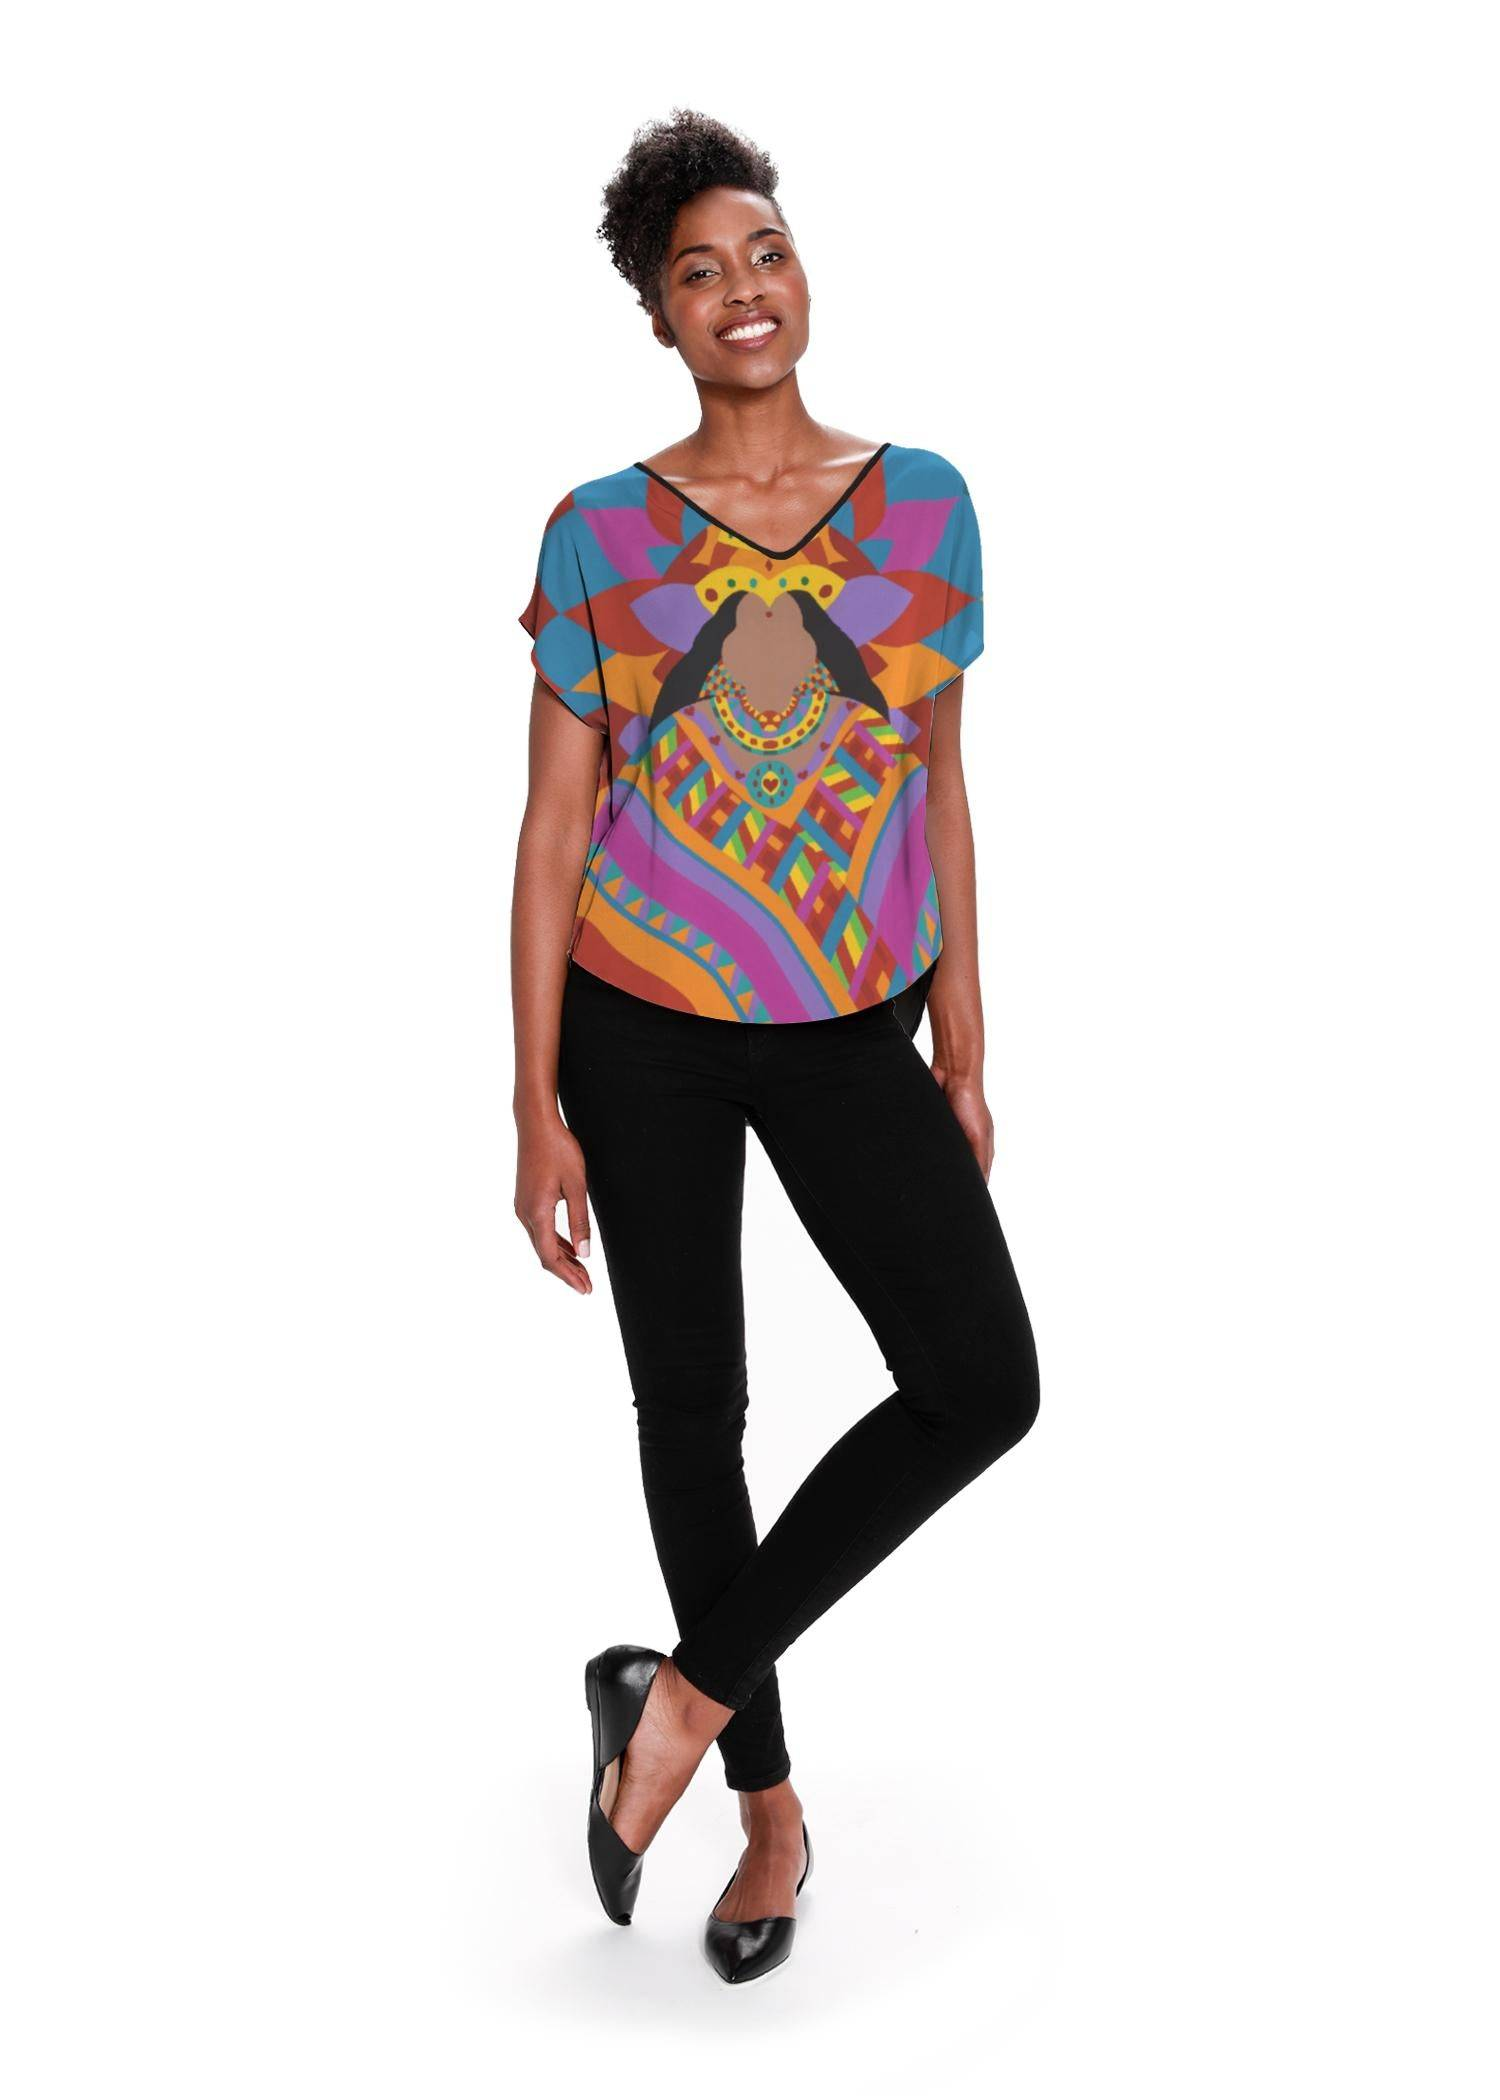 Synthia Saint James Women's V-Neck Top - Devi Lakshmi Rangoli by Synthia Saint James Original Artist  - Size: Black / 2X